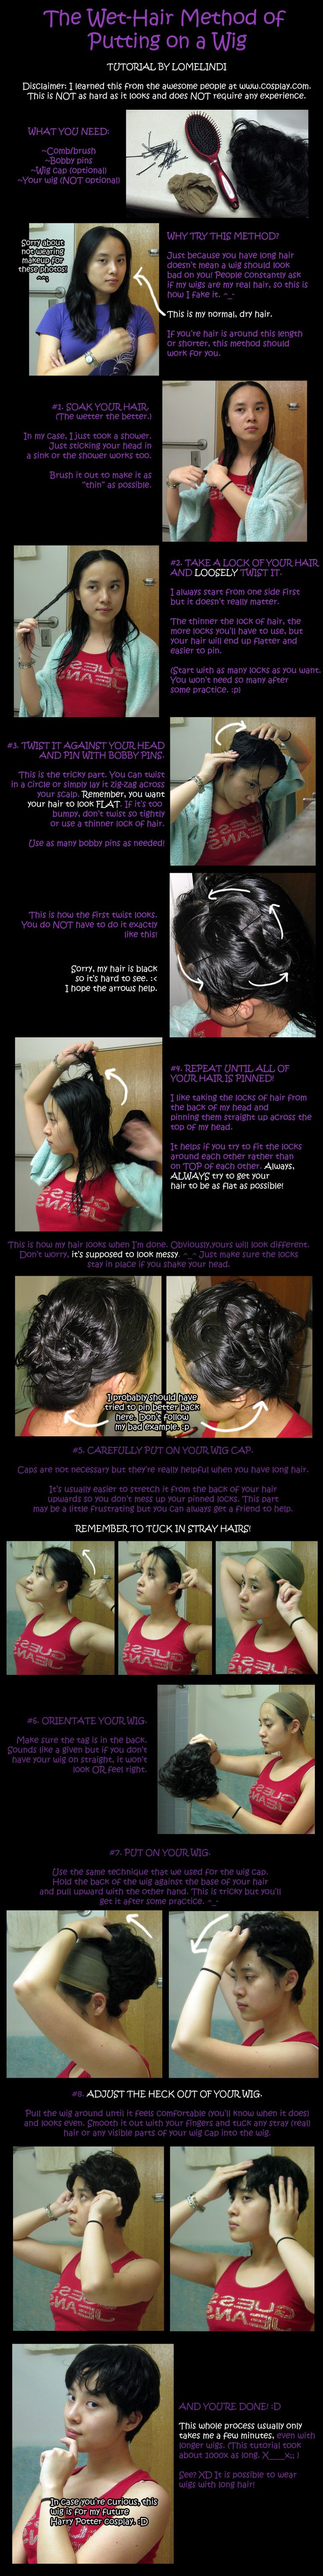 How To Put On A Wig Tutorial by Lomelindi88 on deviantART